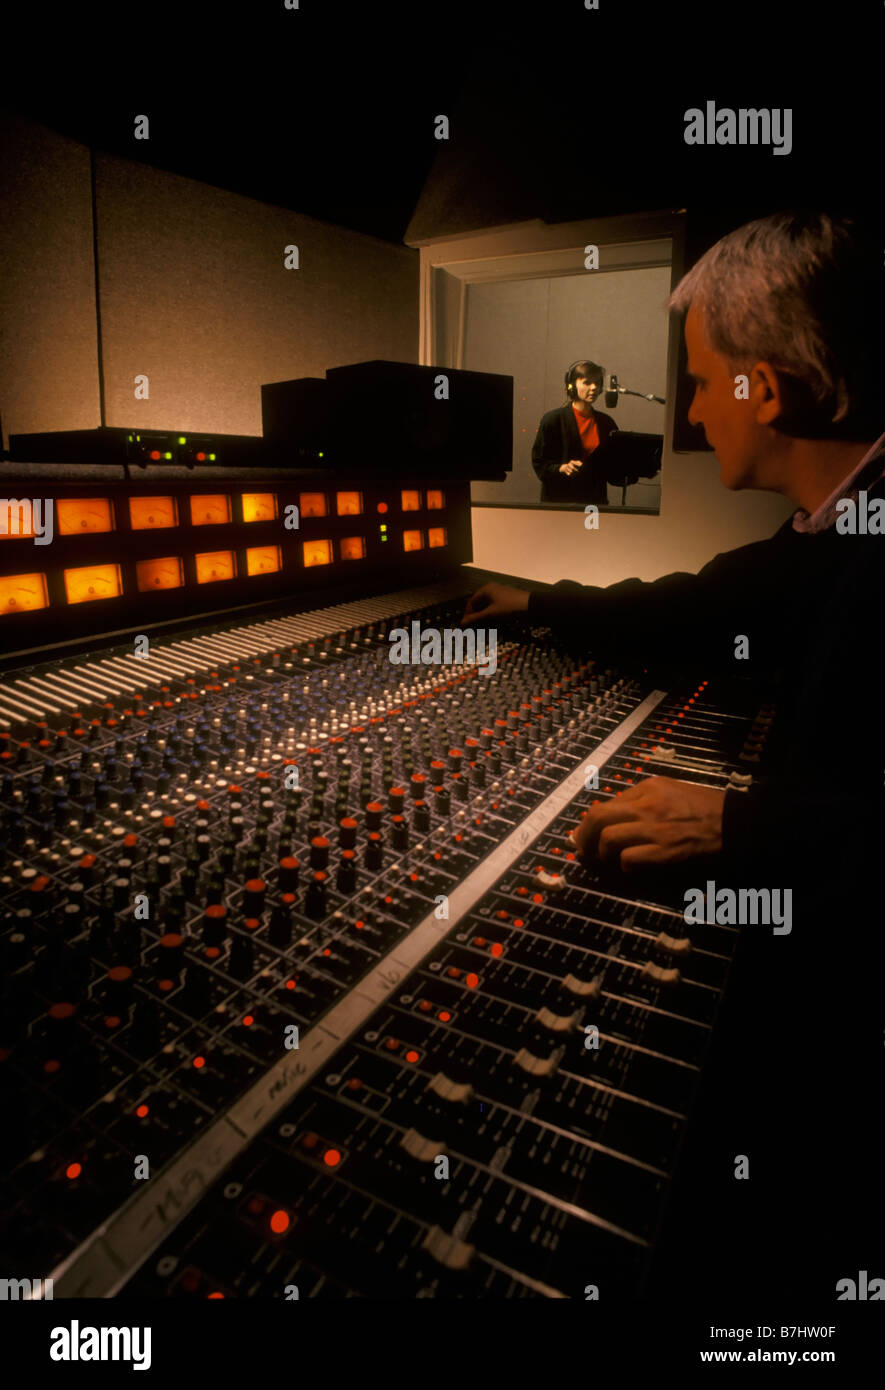 Sound Engineer and talent in sound recording studio. Vancouver, BC, Canada Stock Photo